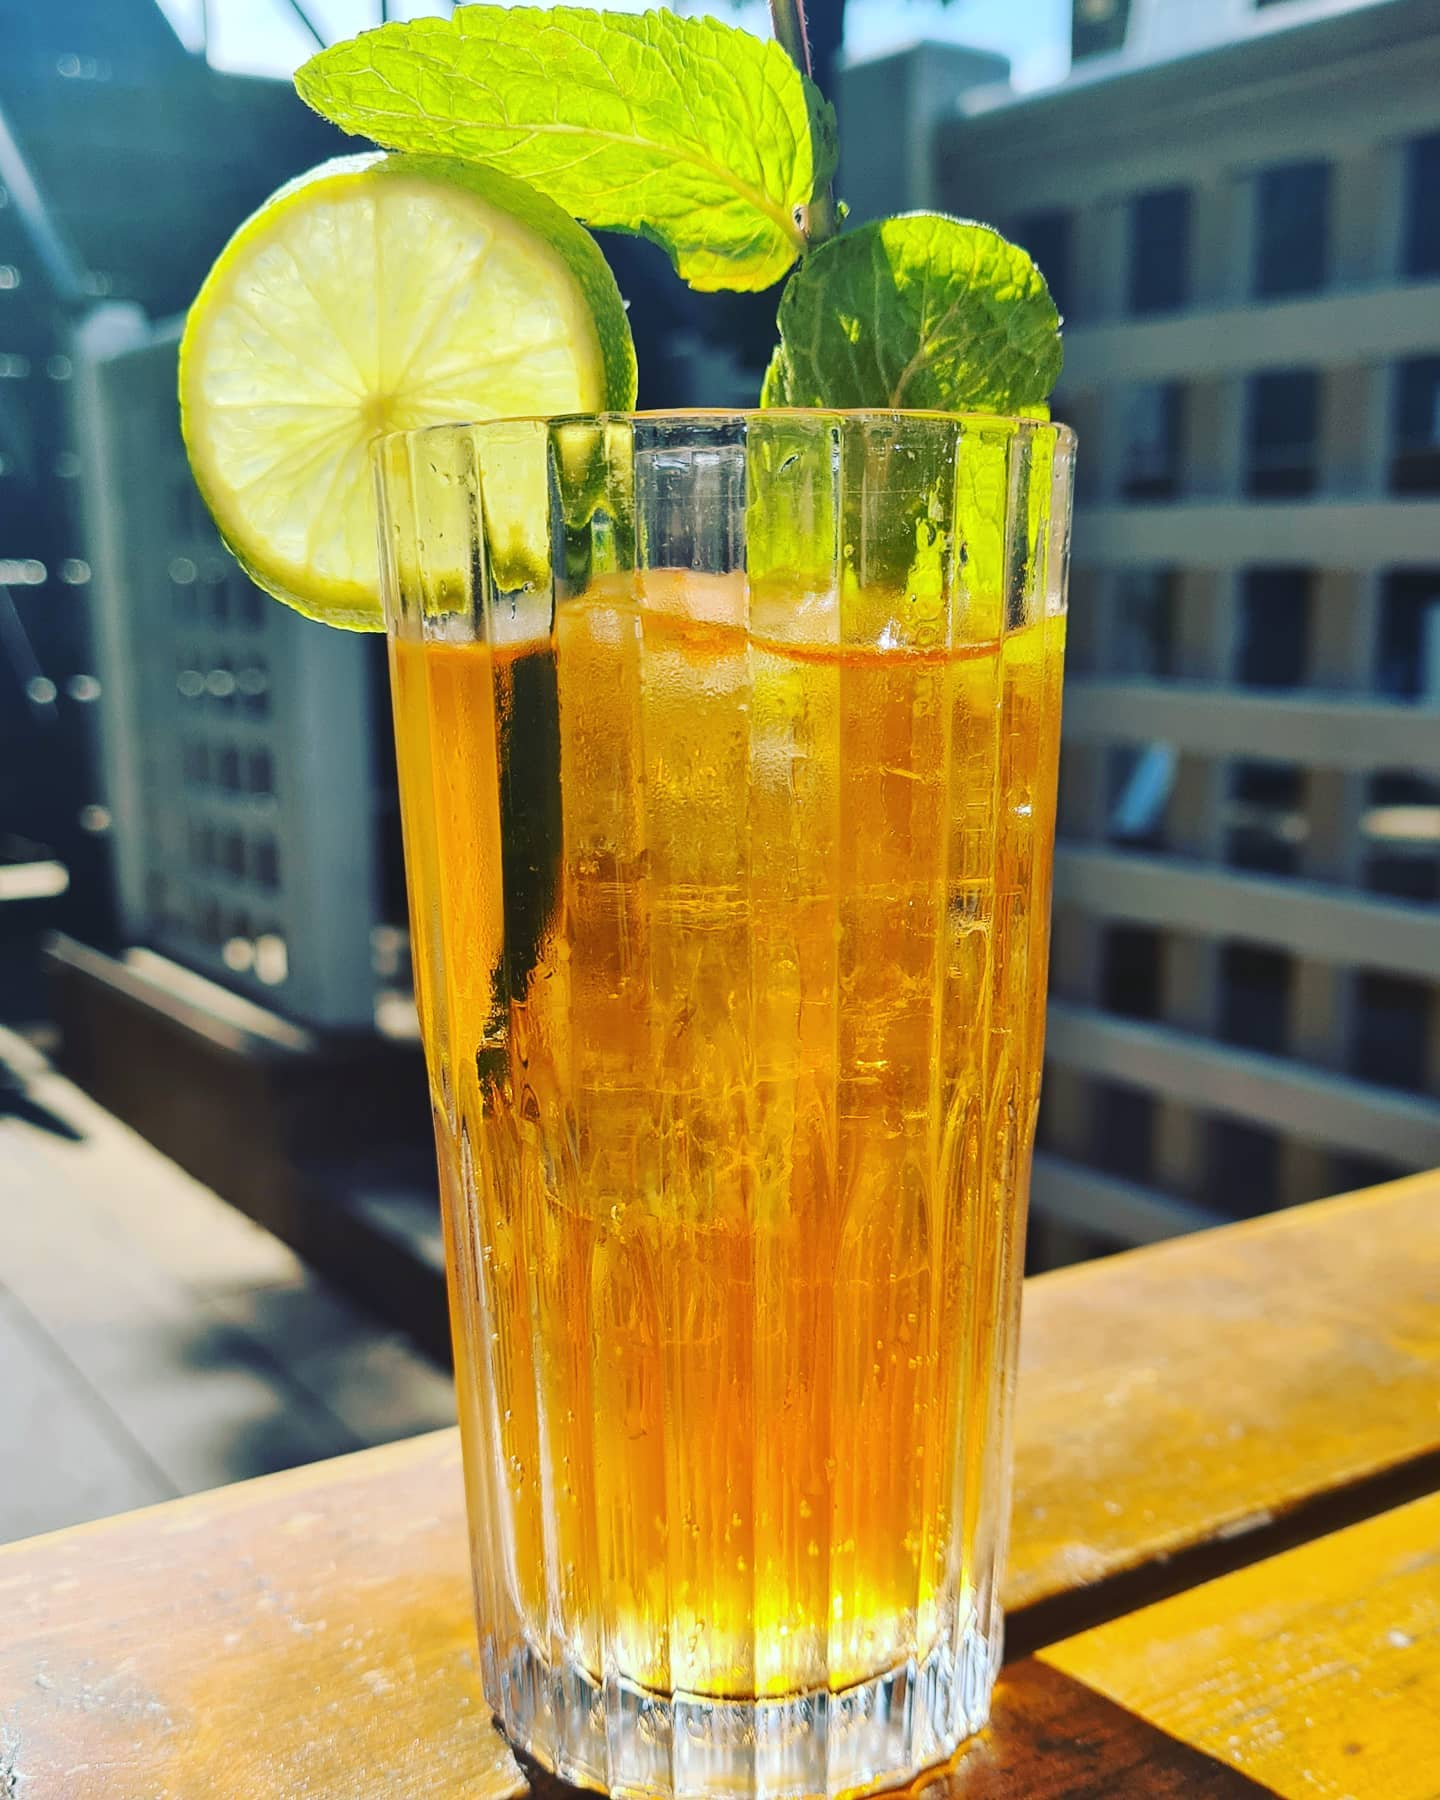 Were so glad summer has decided to arrive!  💗 Cocktails in our sunny garden 🥰 🥂 #tootingbec #tootingbroadway #balham #love #publunch #cocktails #lime #mint #beergarden #summer #loveit #huns #londonfoodie #sw17 #london #puppy #beer #british #winter #pimms #supportlocal #happy #f52grams #thirsty #thursday #spritz #drink #streatham #summerishere #clammy